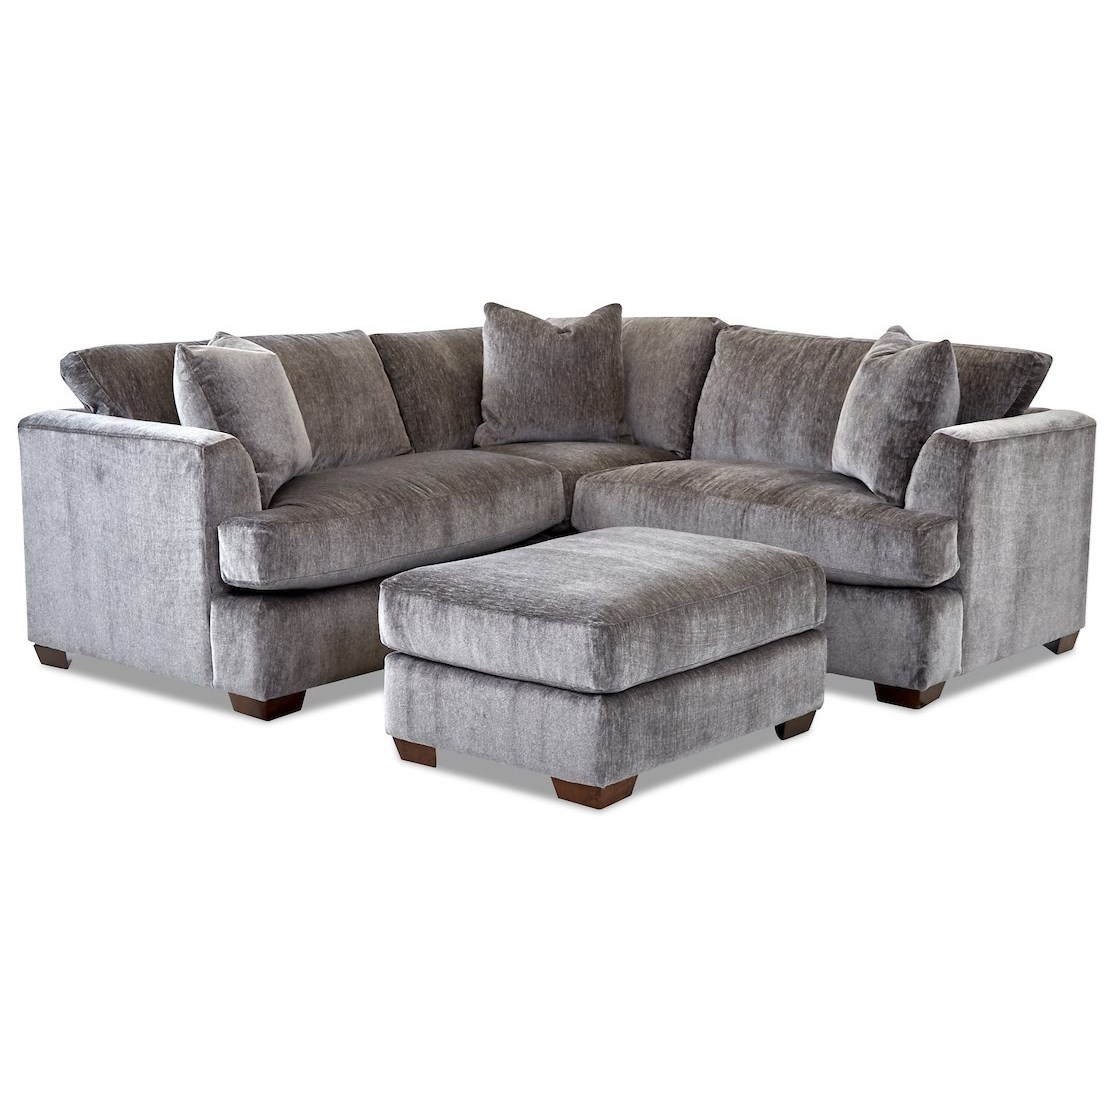 2-Seat Corner Sectional Sofa